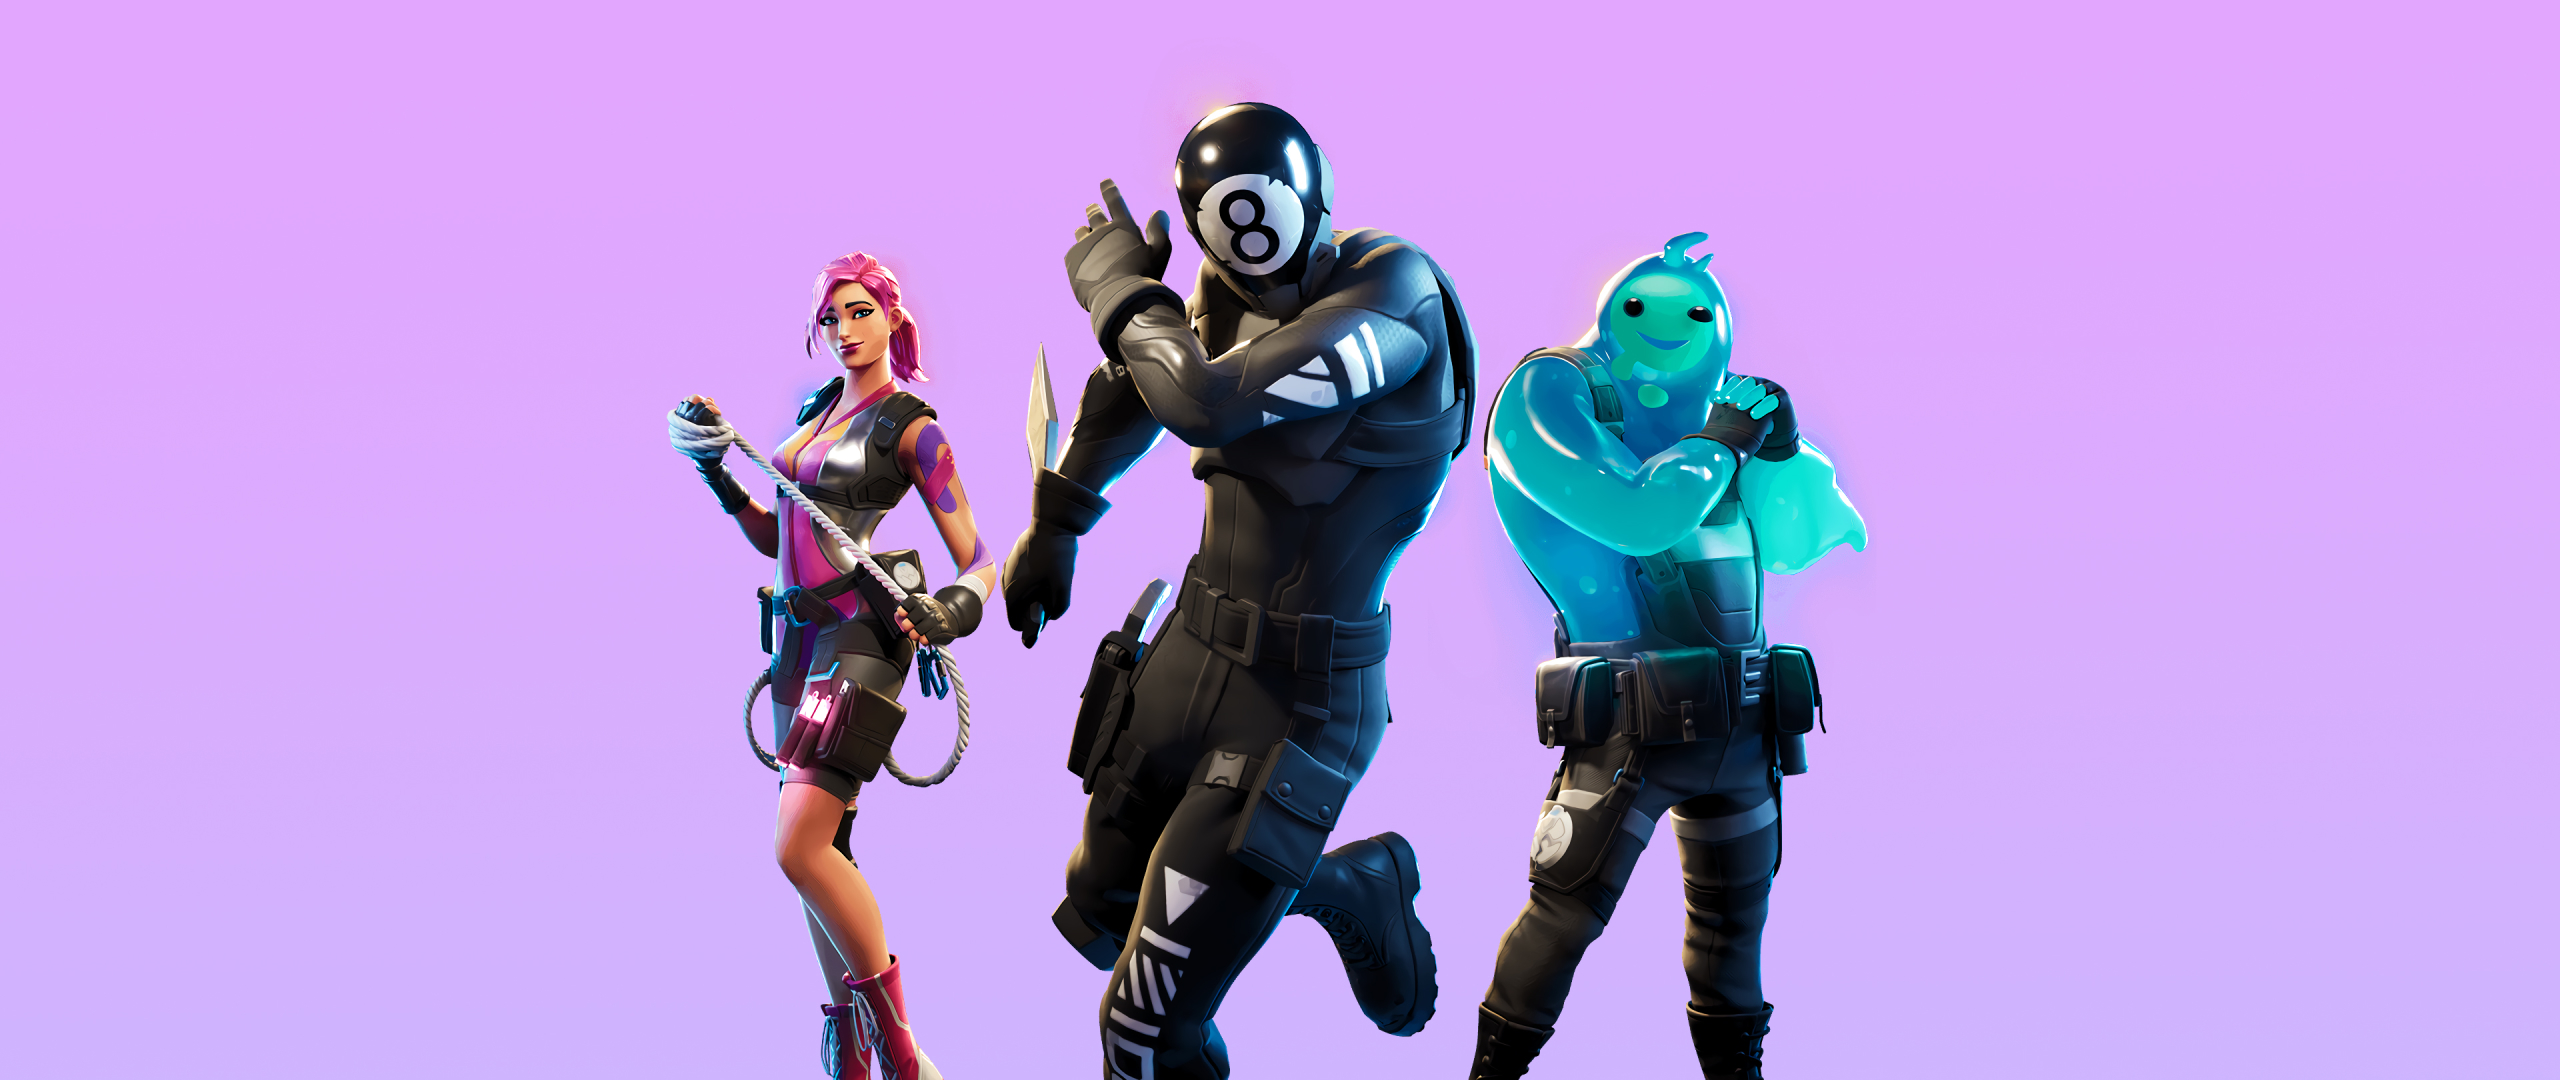 2560x1080 Fortnite Chapter 2 Season 1 Battle Pass Skins 2560x1080 Resolution Wallpaper Hd Games 4k Wallpapers Images Photos And Background